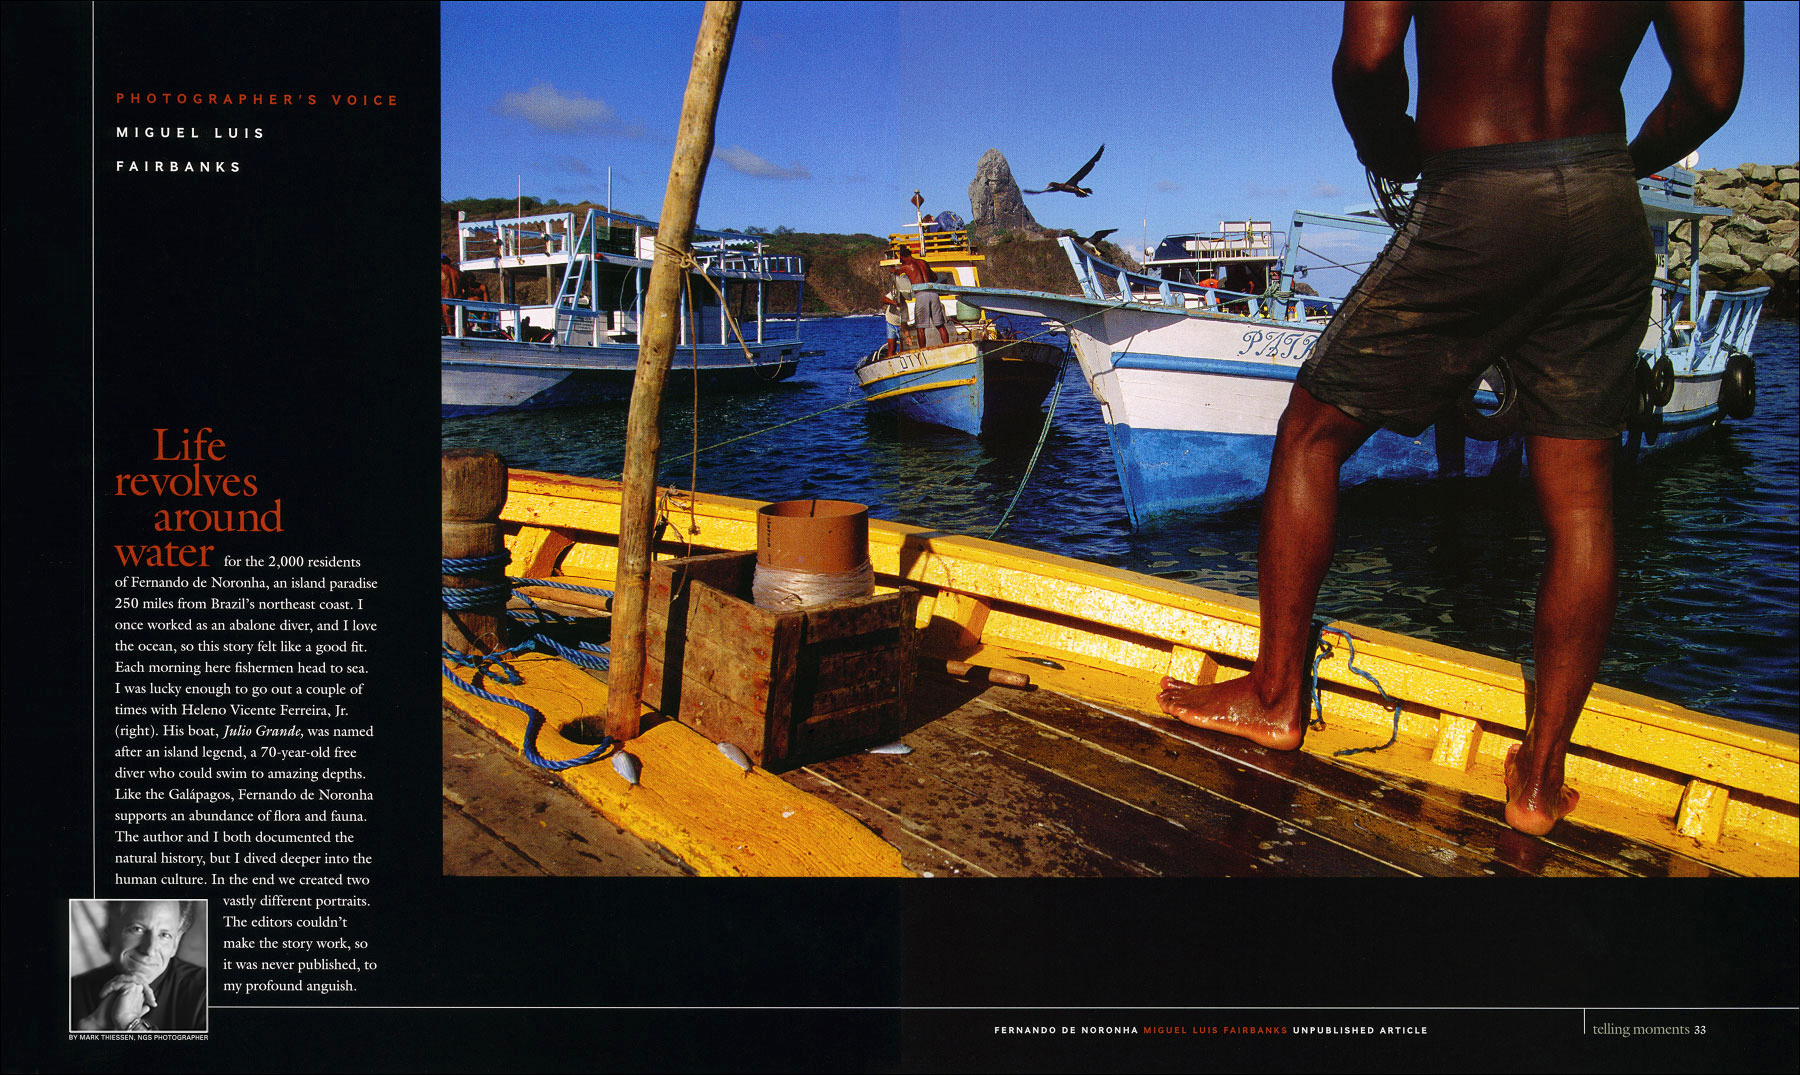 Story on the Brazilian island paradise of Fernando de Noroñha, in the state of Pernambuco, Brazil.  Spread 1 of 2.(for National Geographic Magazine)